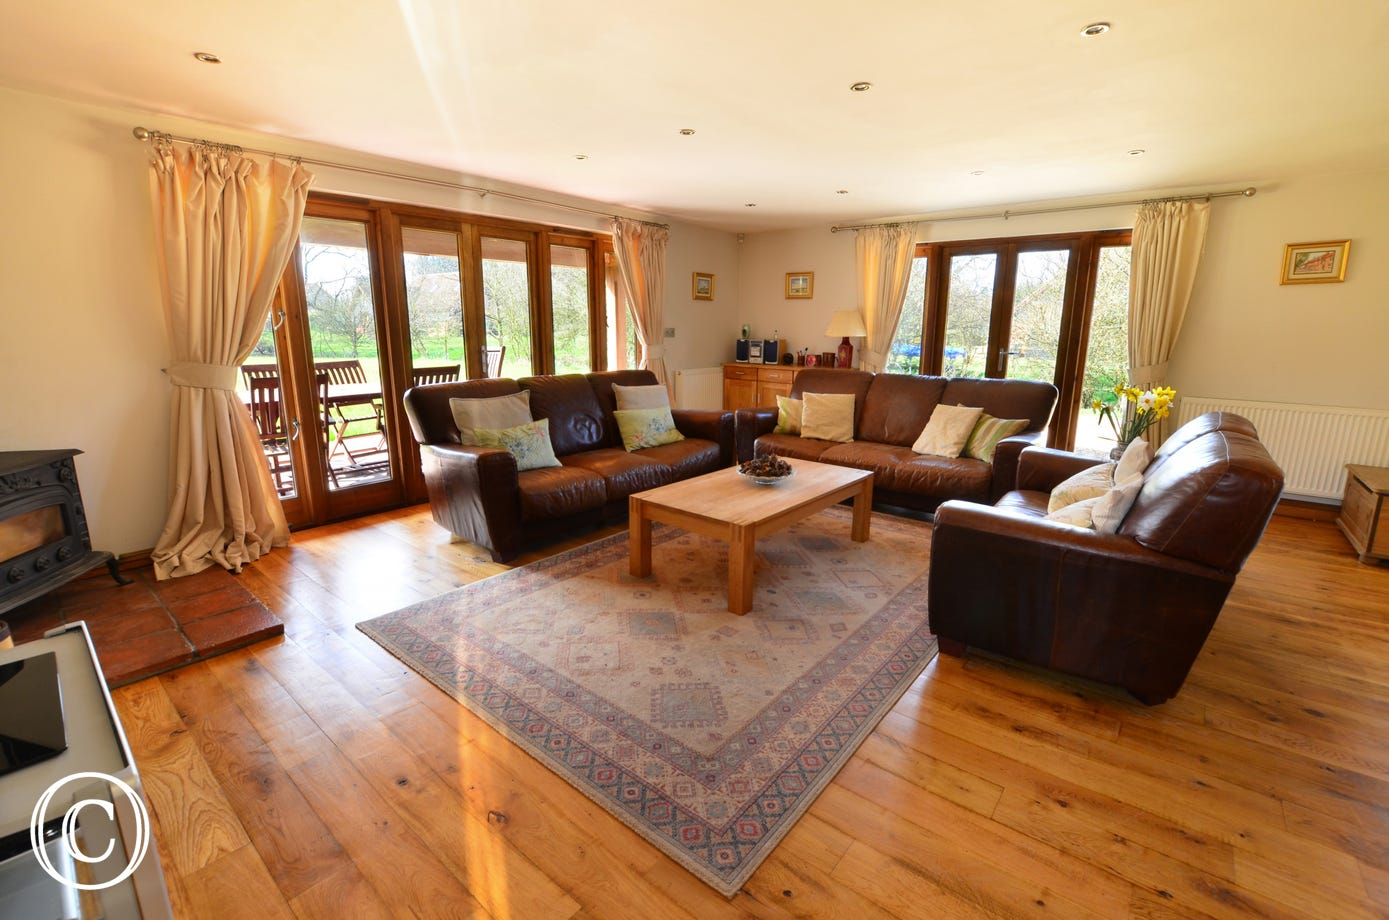 The sitting area is a lovely space to relax in and the attractive rug and wood burner ensures you are warm and comfortable